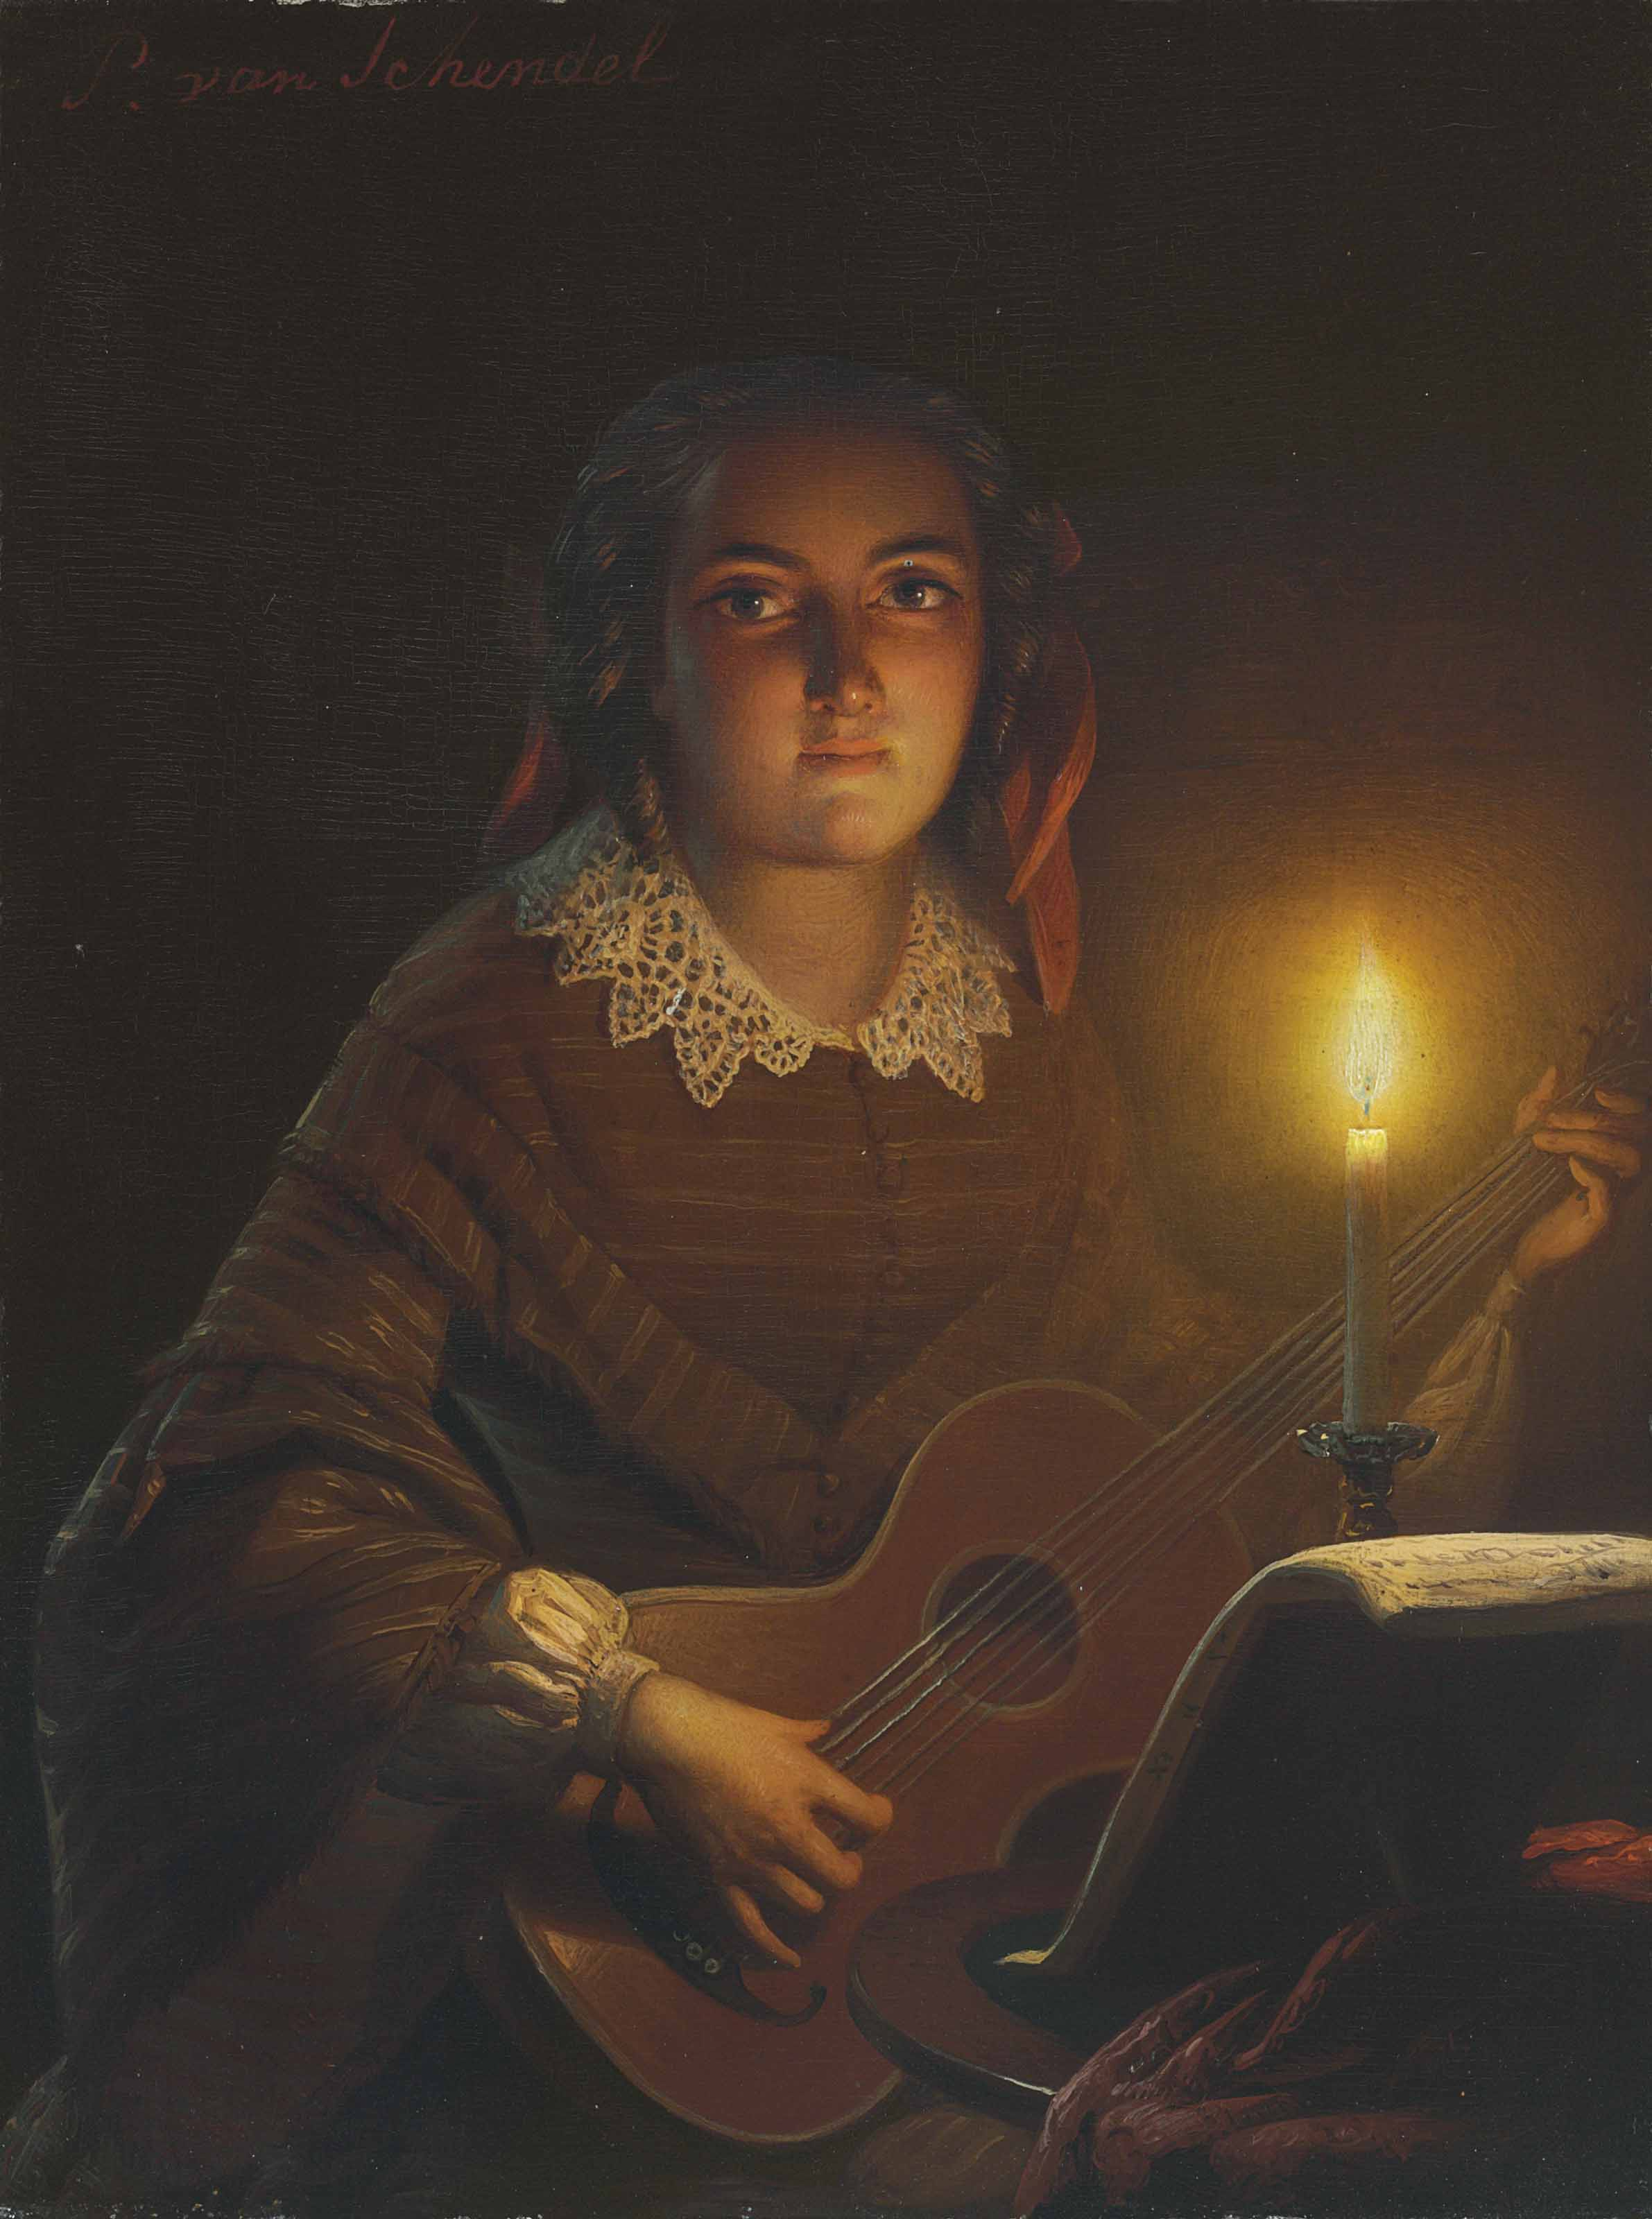 A Girl Playing a Guitar by Candlelight